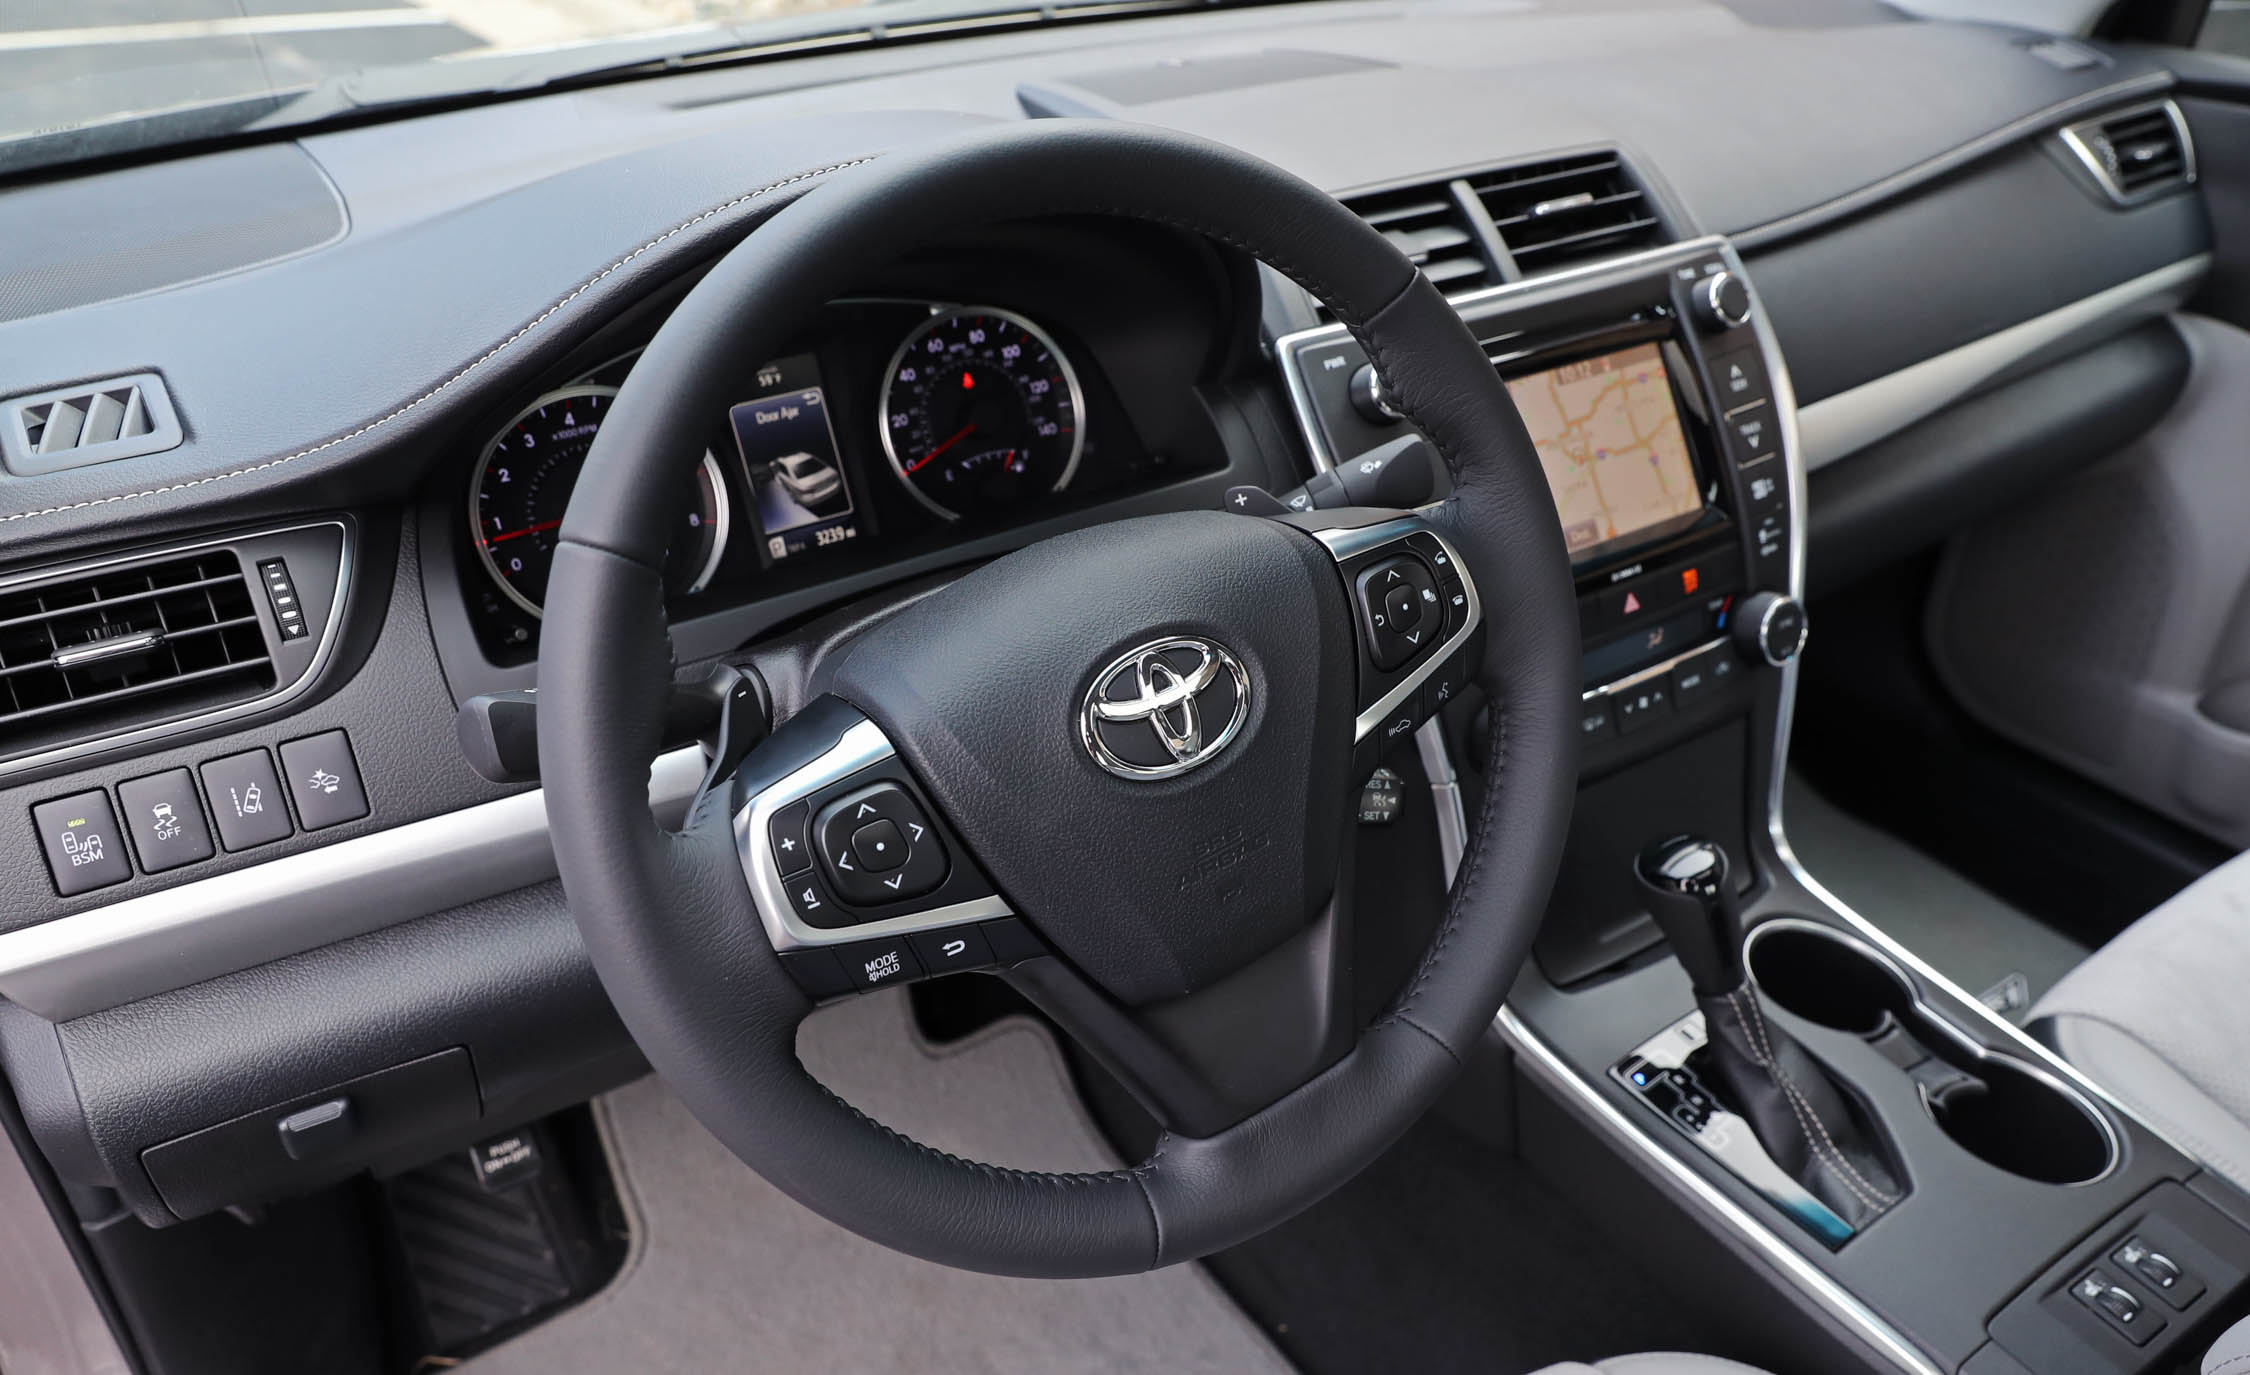 2017 Toyota Camry Interior View Cockpit Steering And Dash (View 15 of 37)